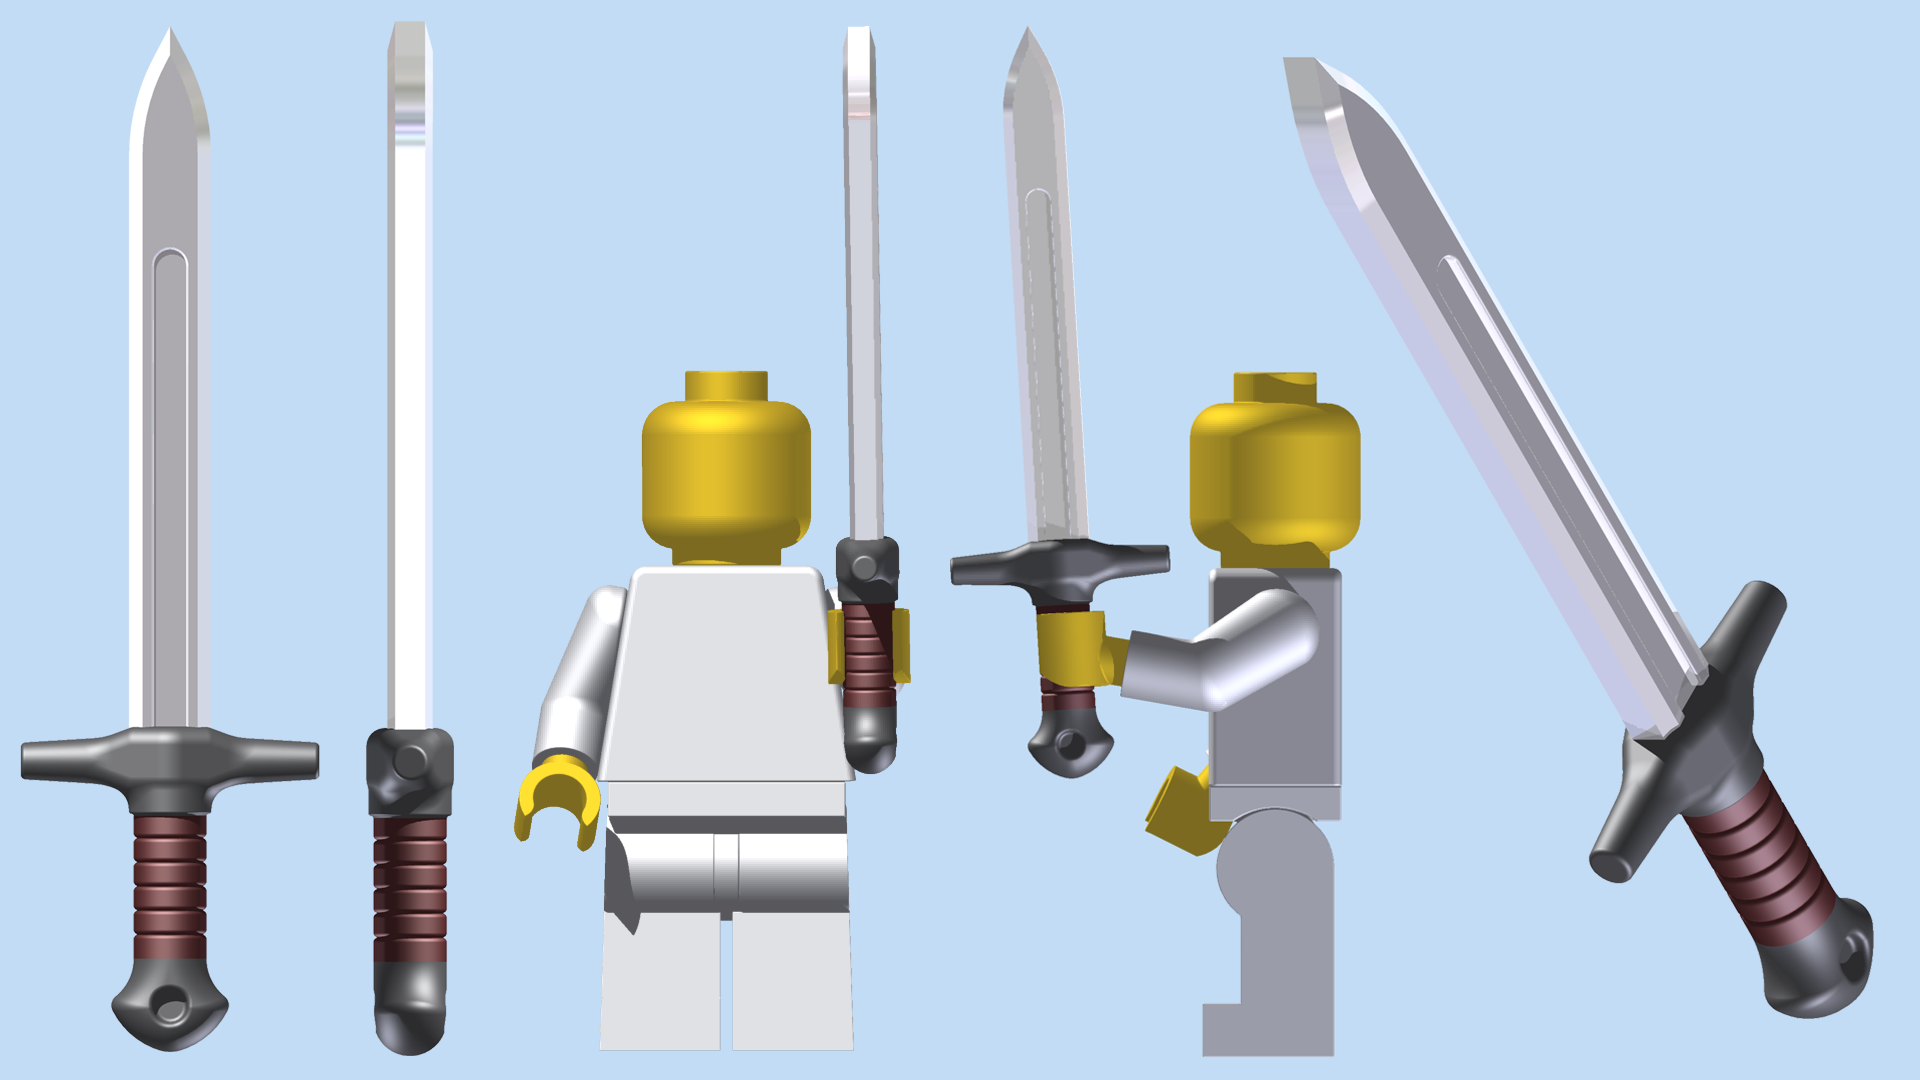 LEGO Ordon Sword by mingles